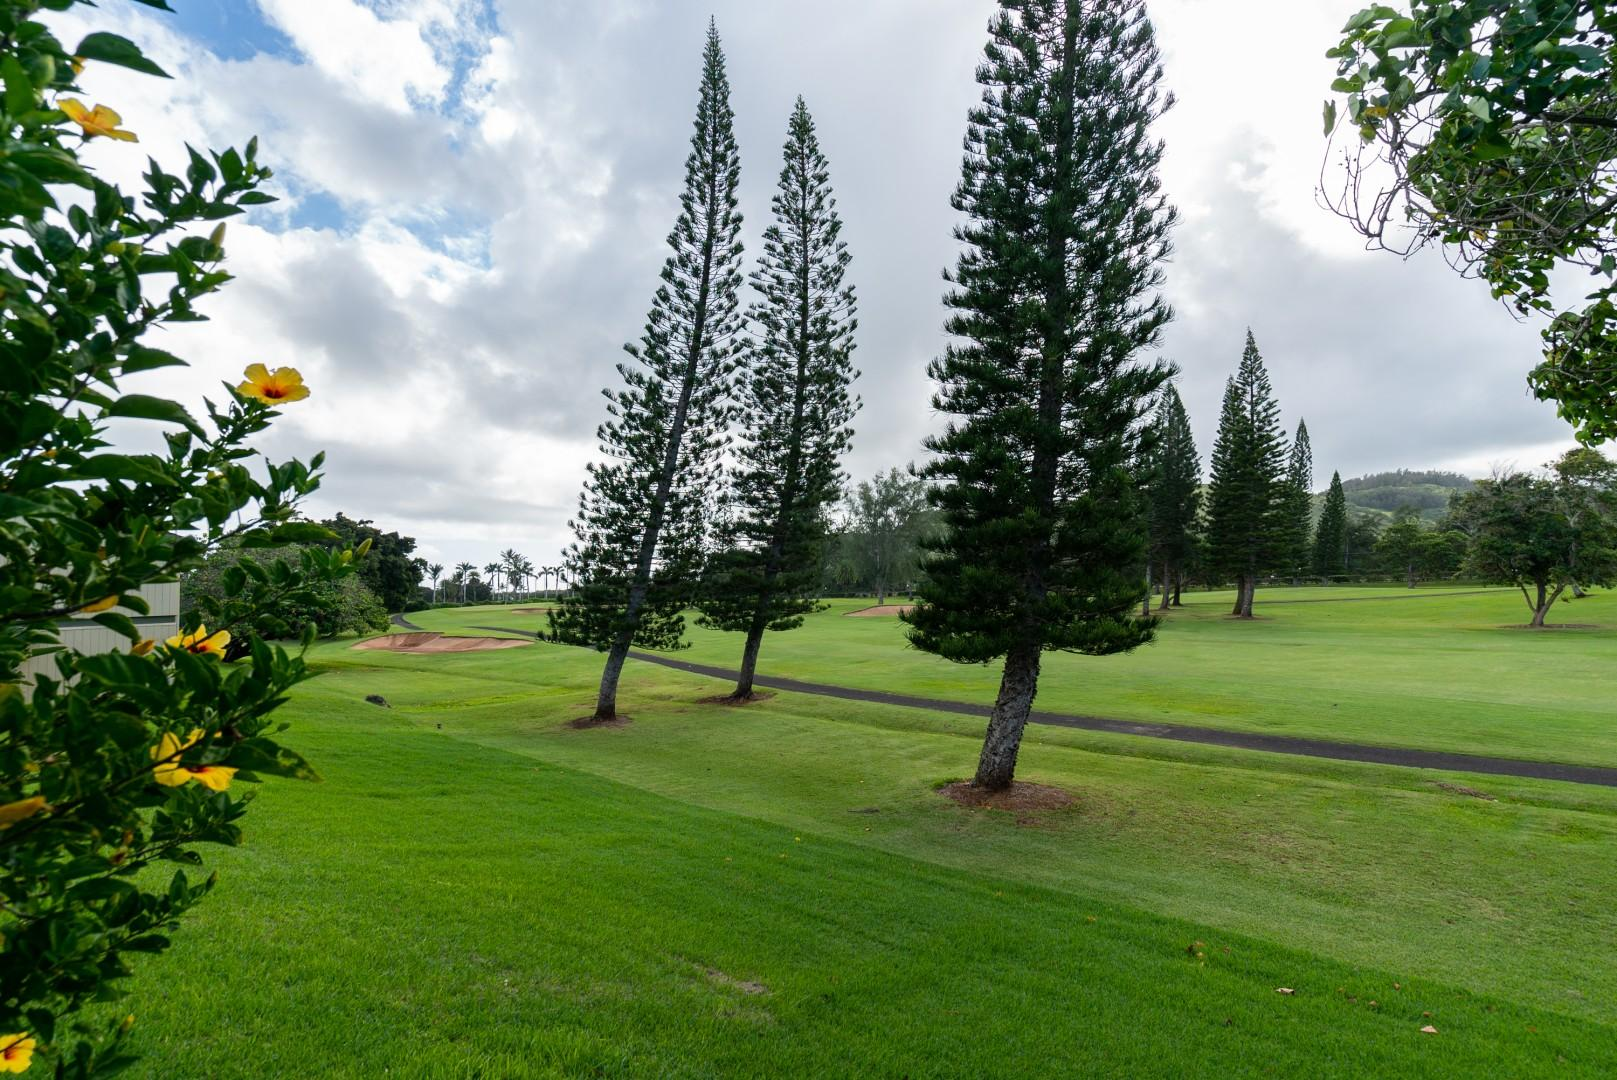 Golf course in front of property